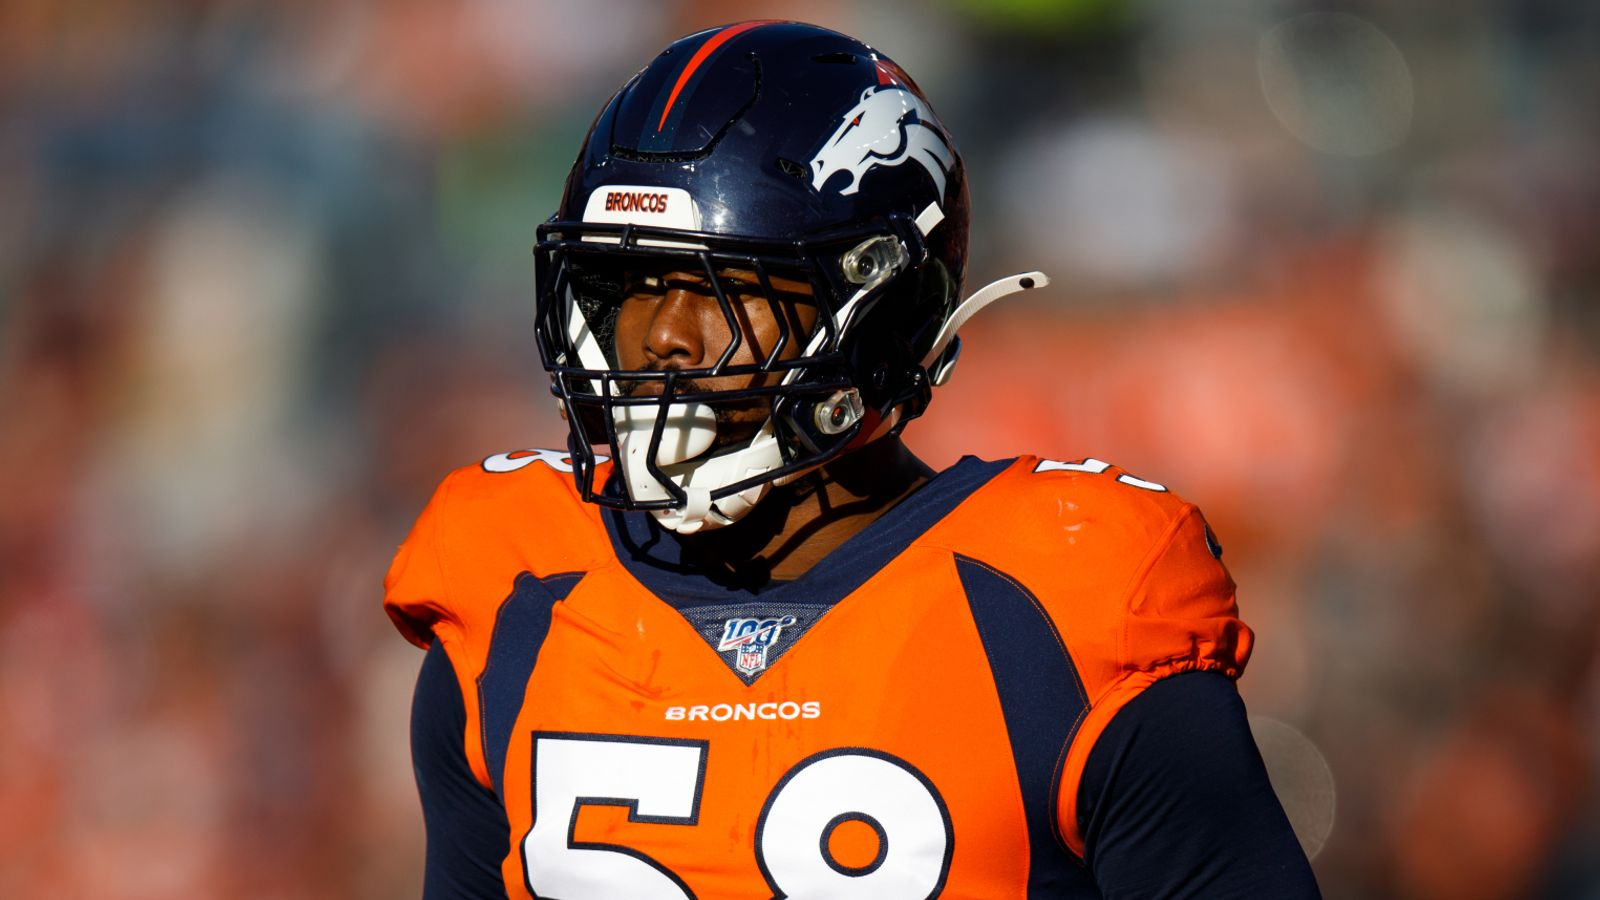 Denver Broncos U0026 39 Von Miller Tests Positive For COVID 19